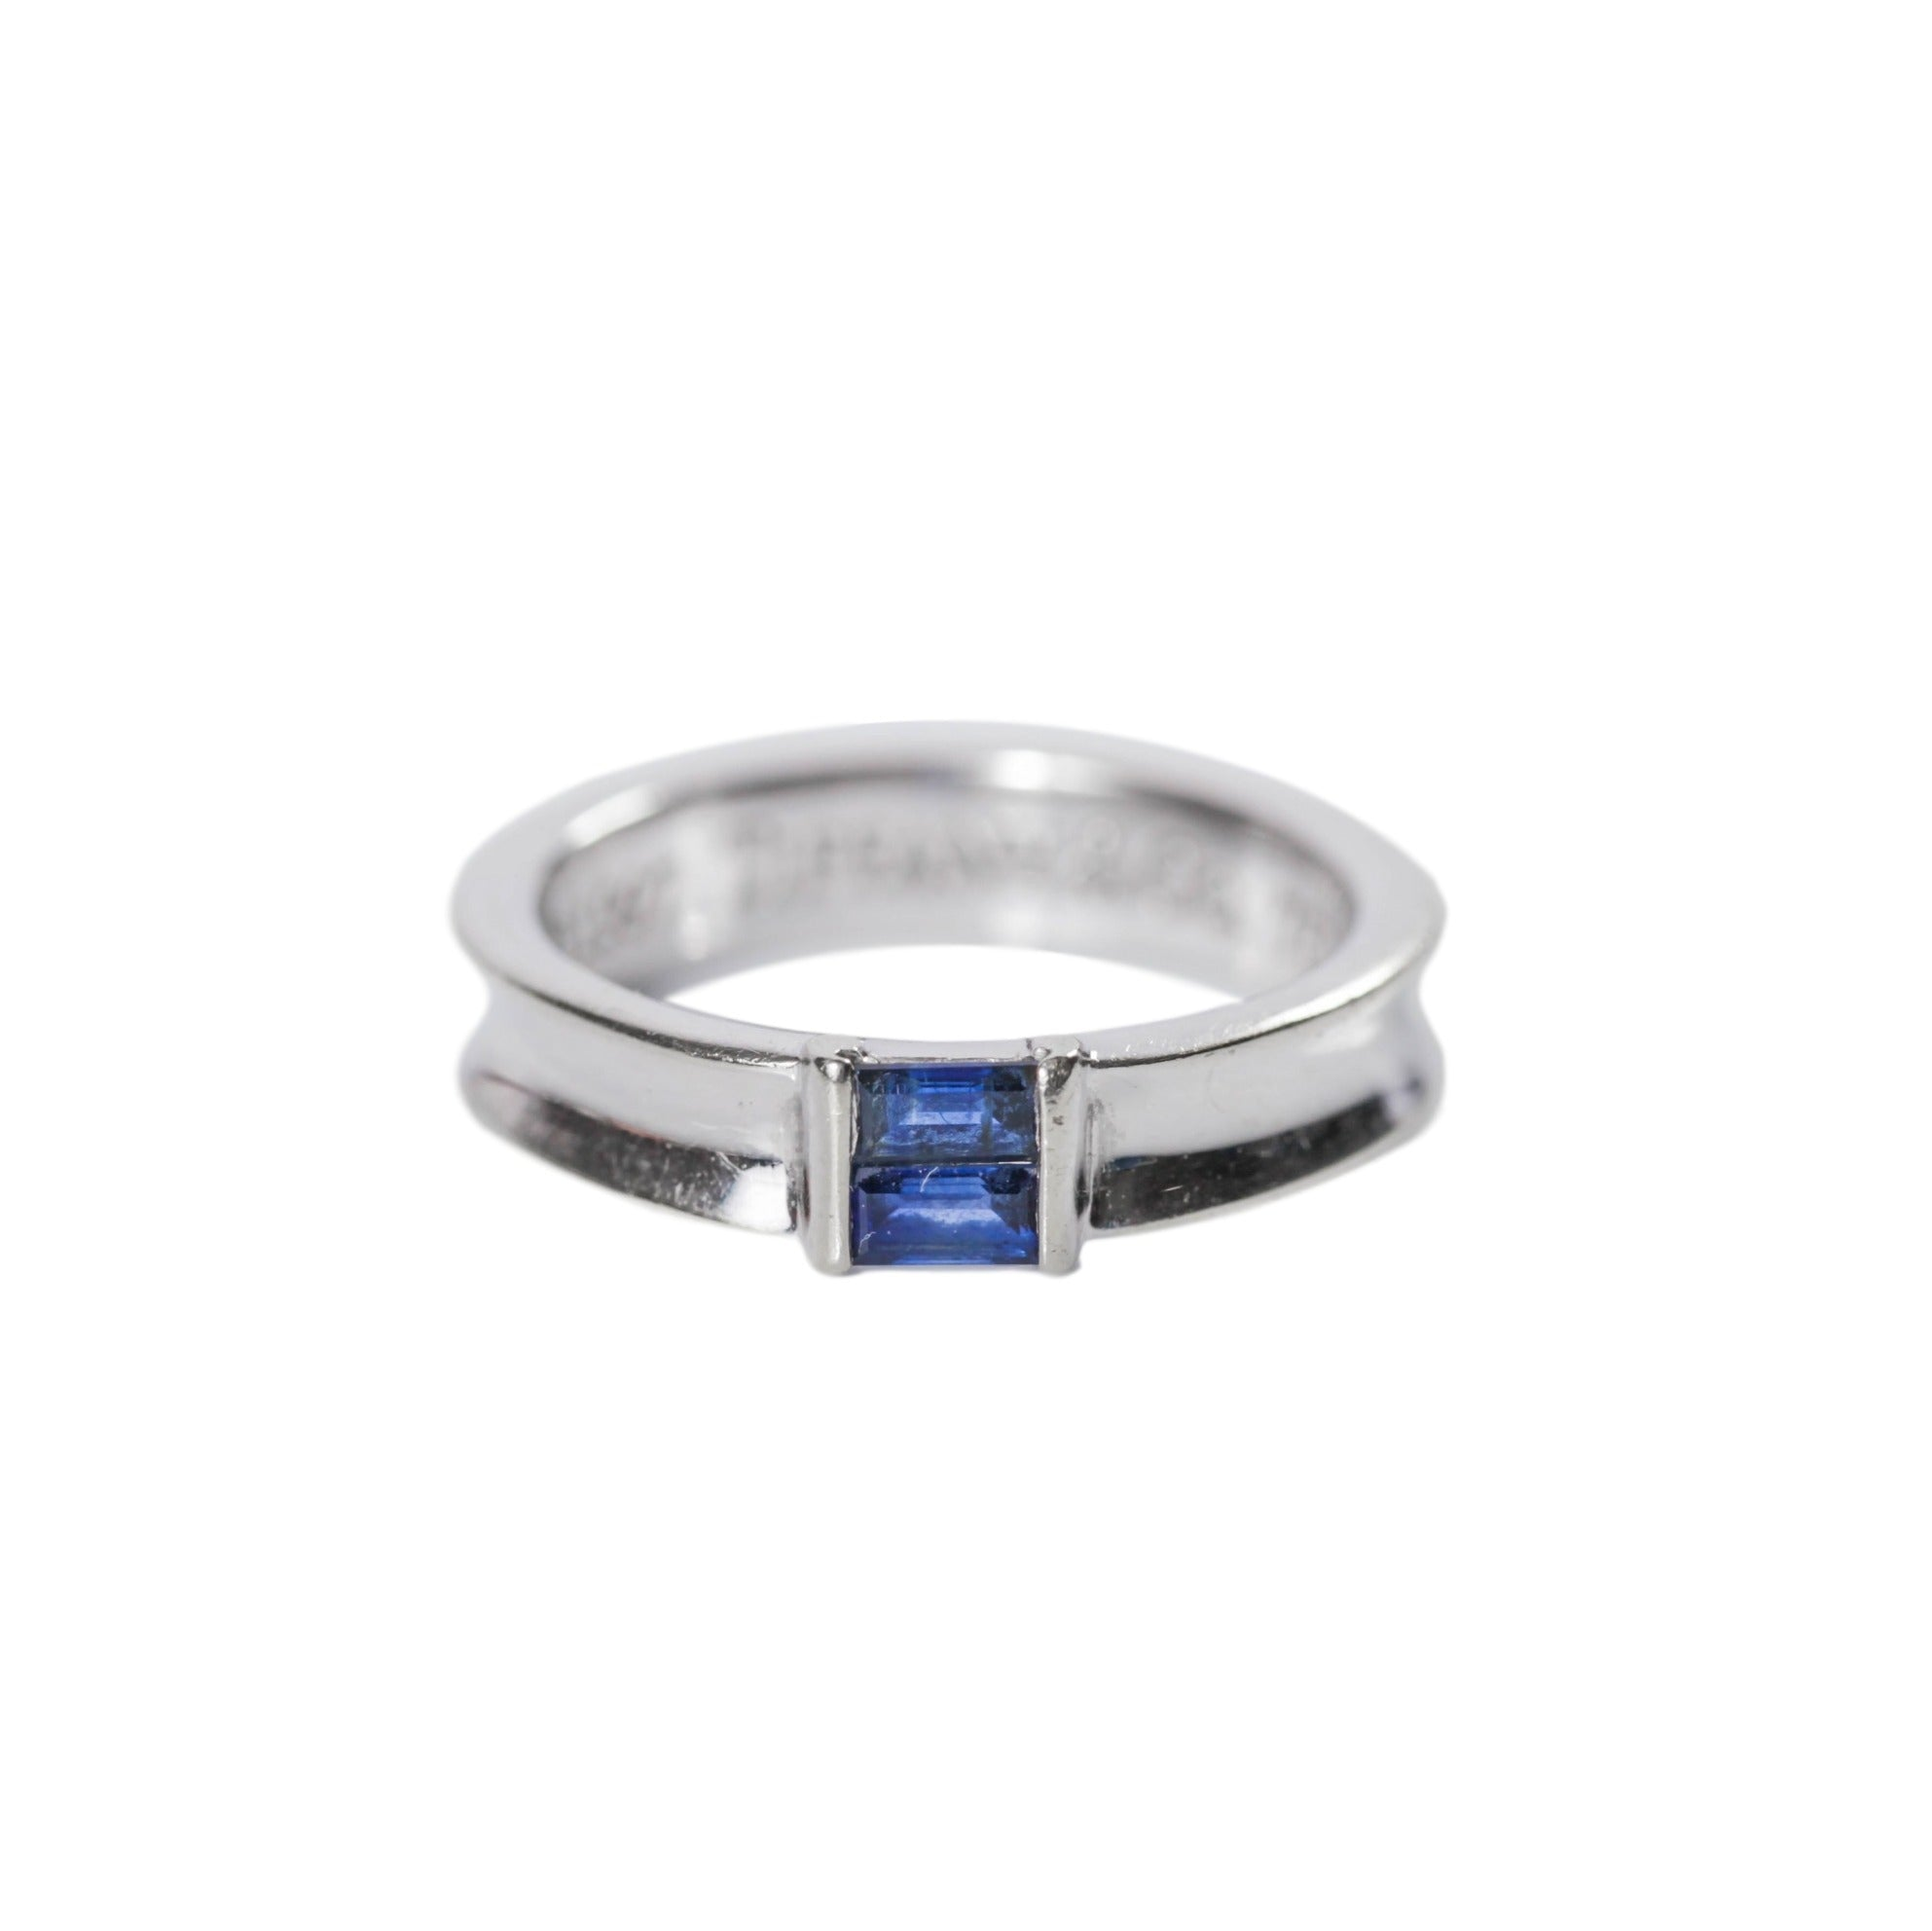 open peretti jewelry co splash sapphire ring sandler silver elsa tiffany bracelet square heart product clasp s